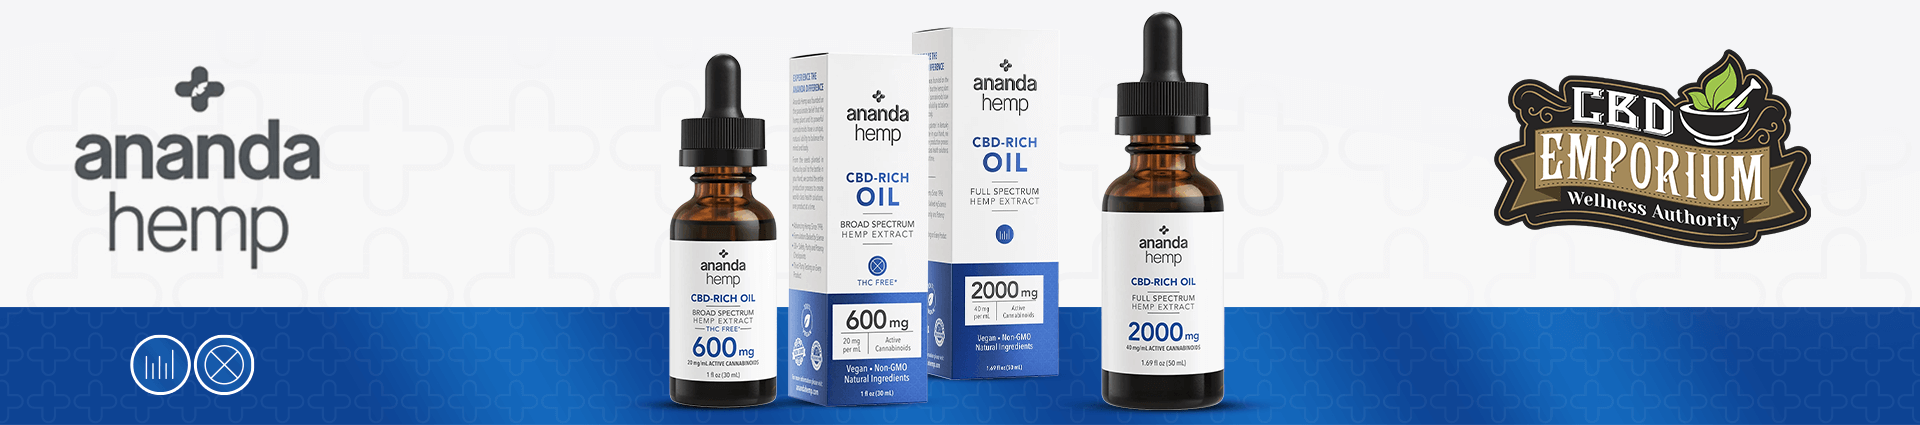 Ananda Hemp CBD Tinctures Carried by CBD Emporium